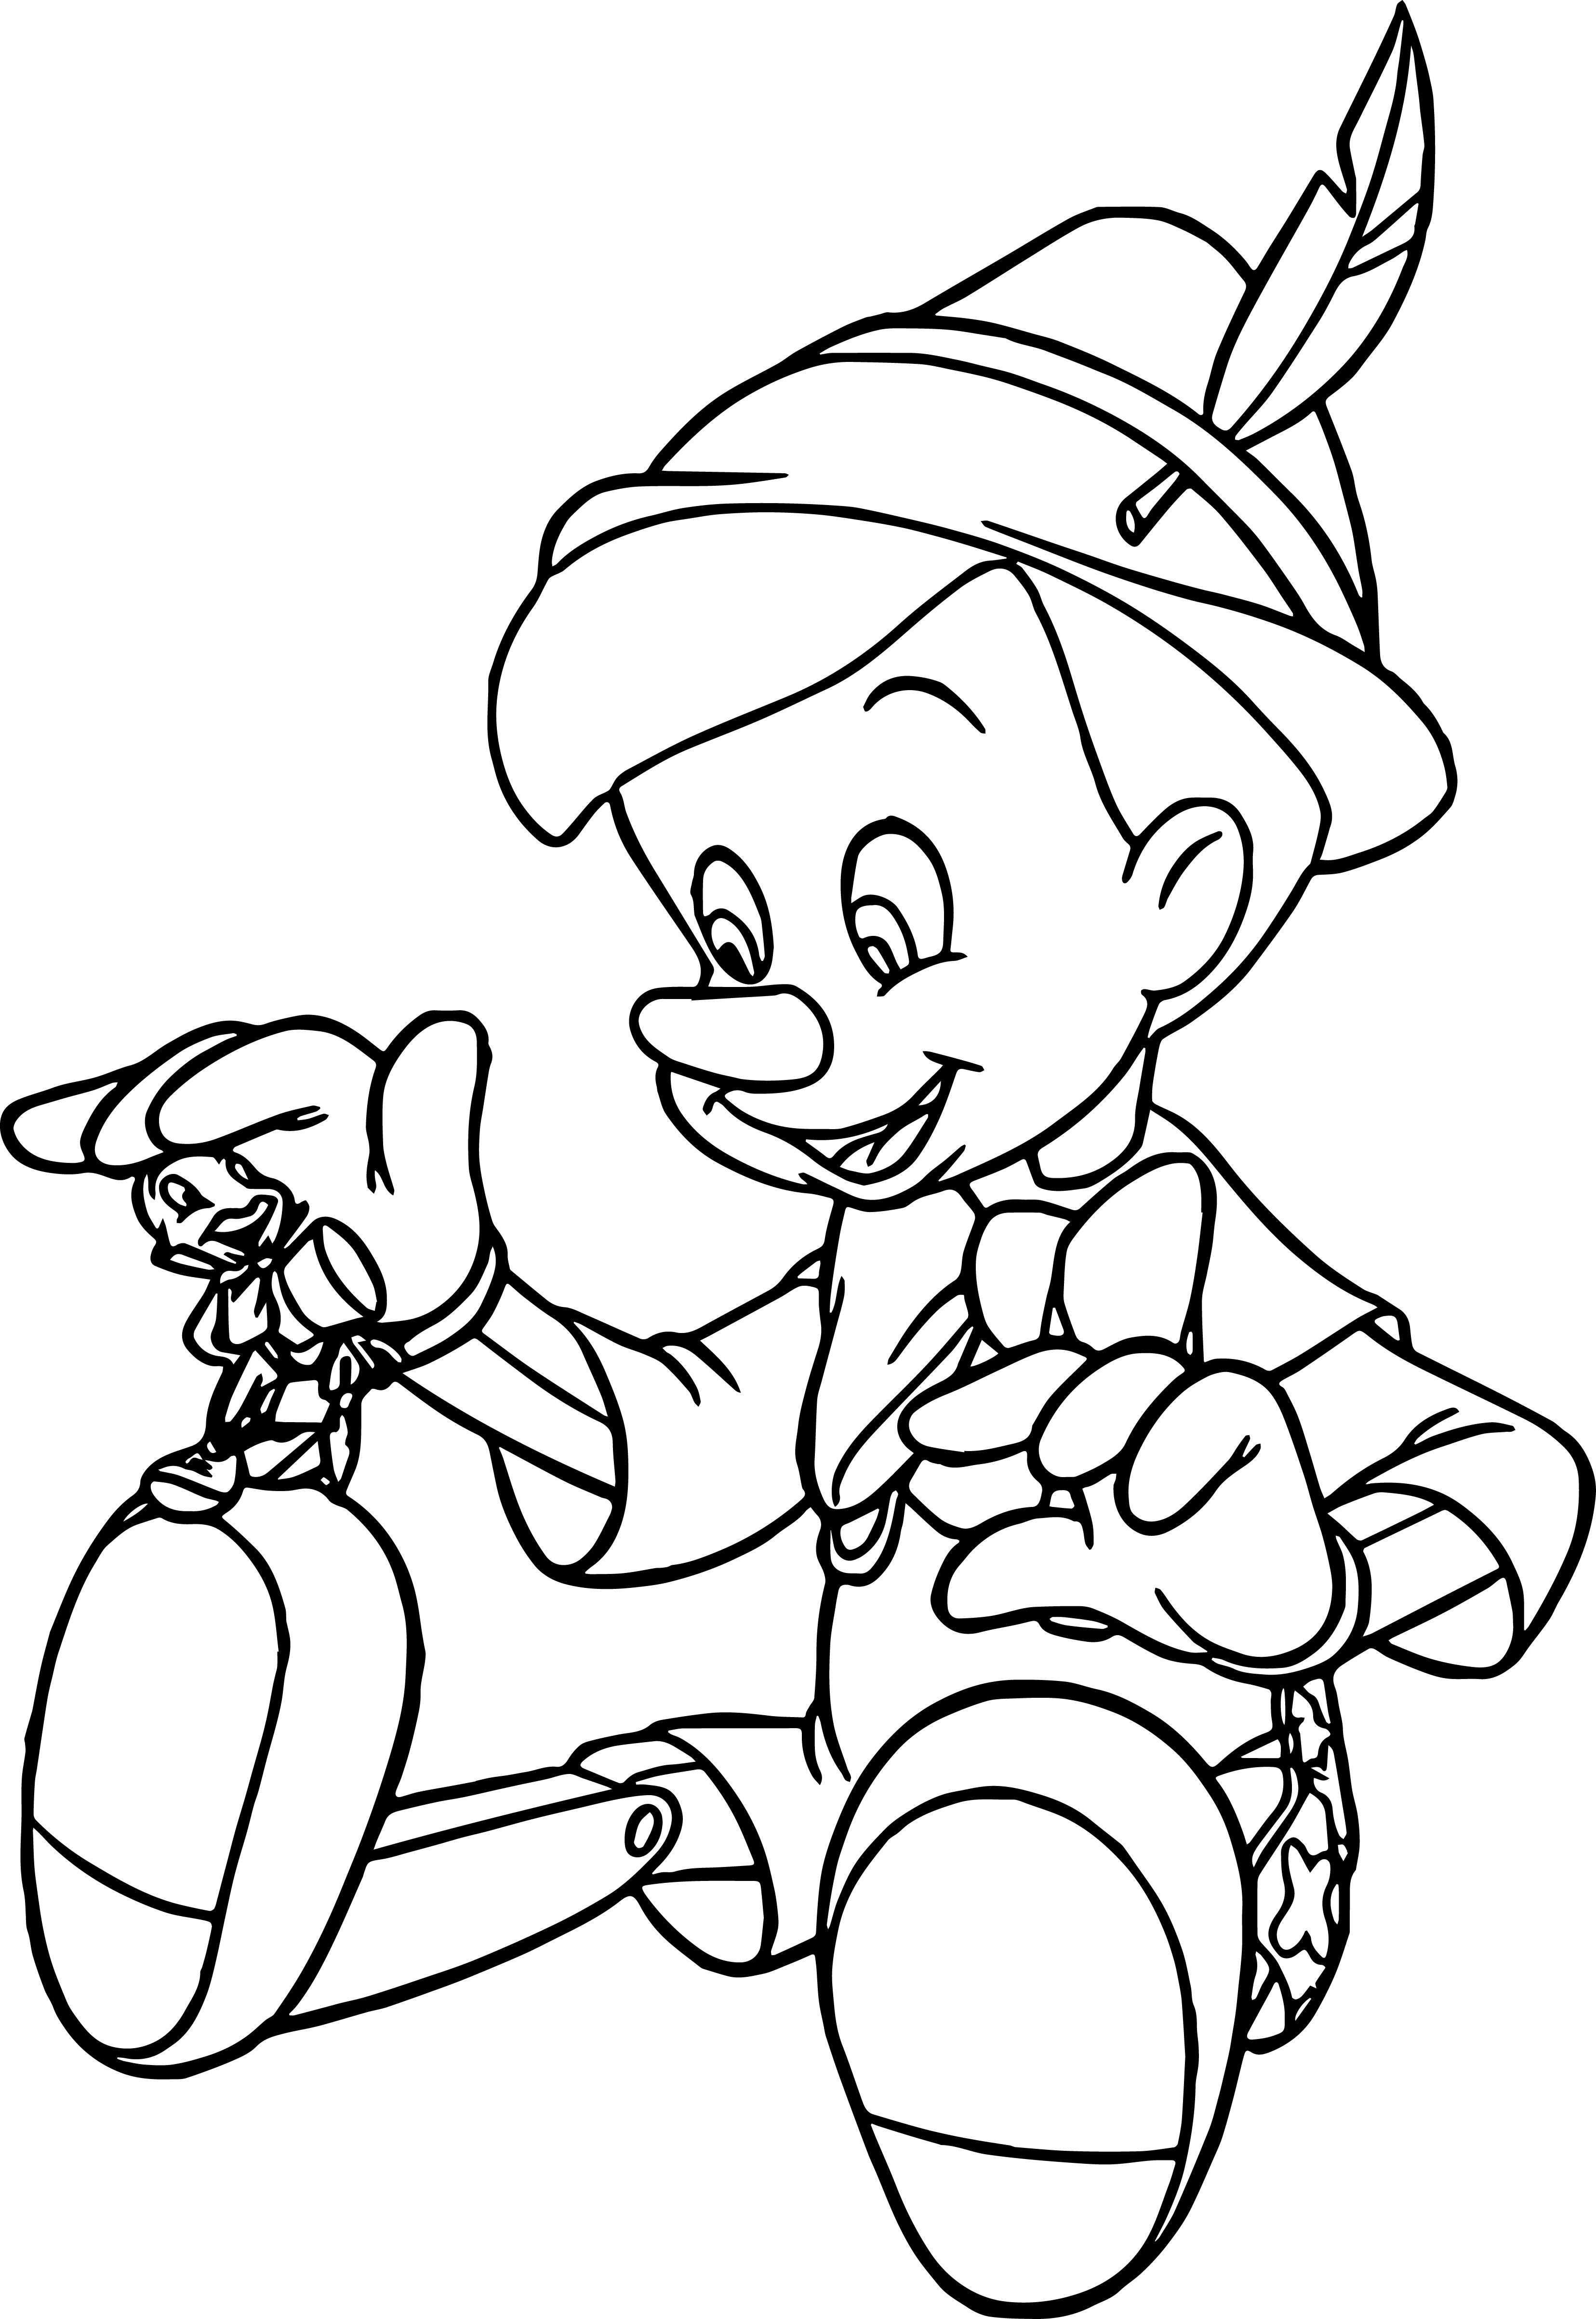 Pinocchio Coloring Pages   Geometric coloring pages ...